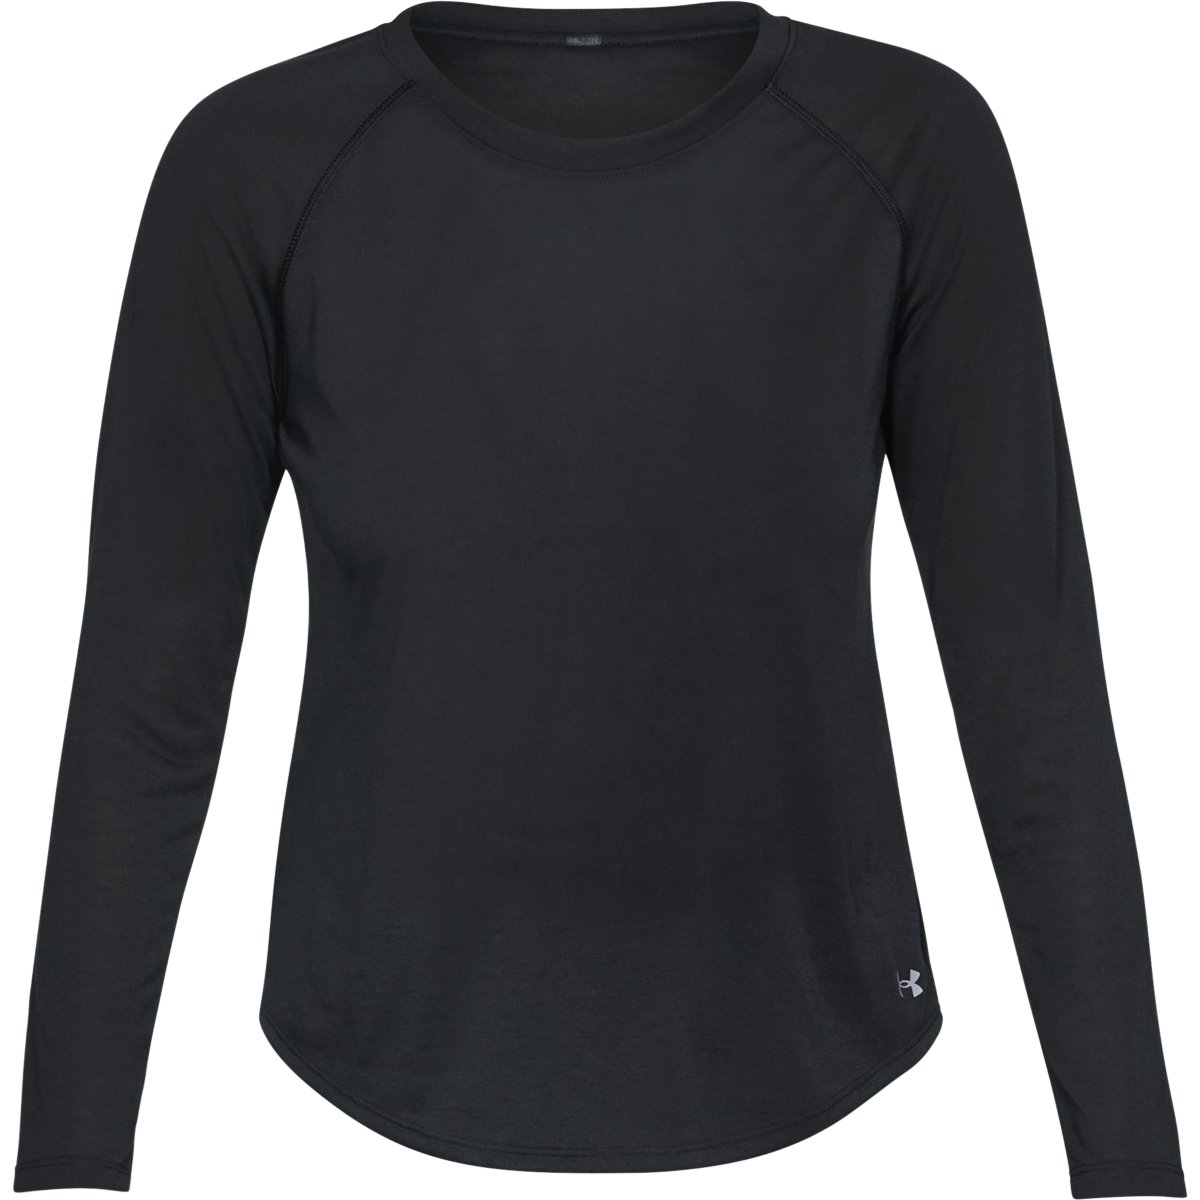 Under Armour Women's Ua Whisperlight Long-Sleeve Shirt - Black, M